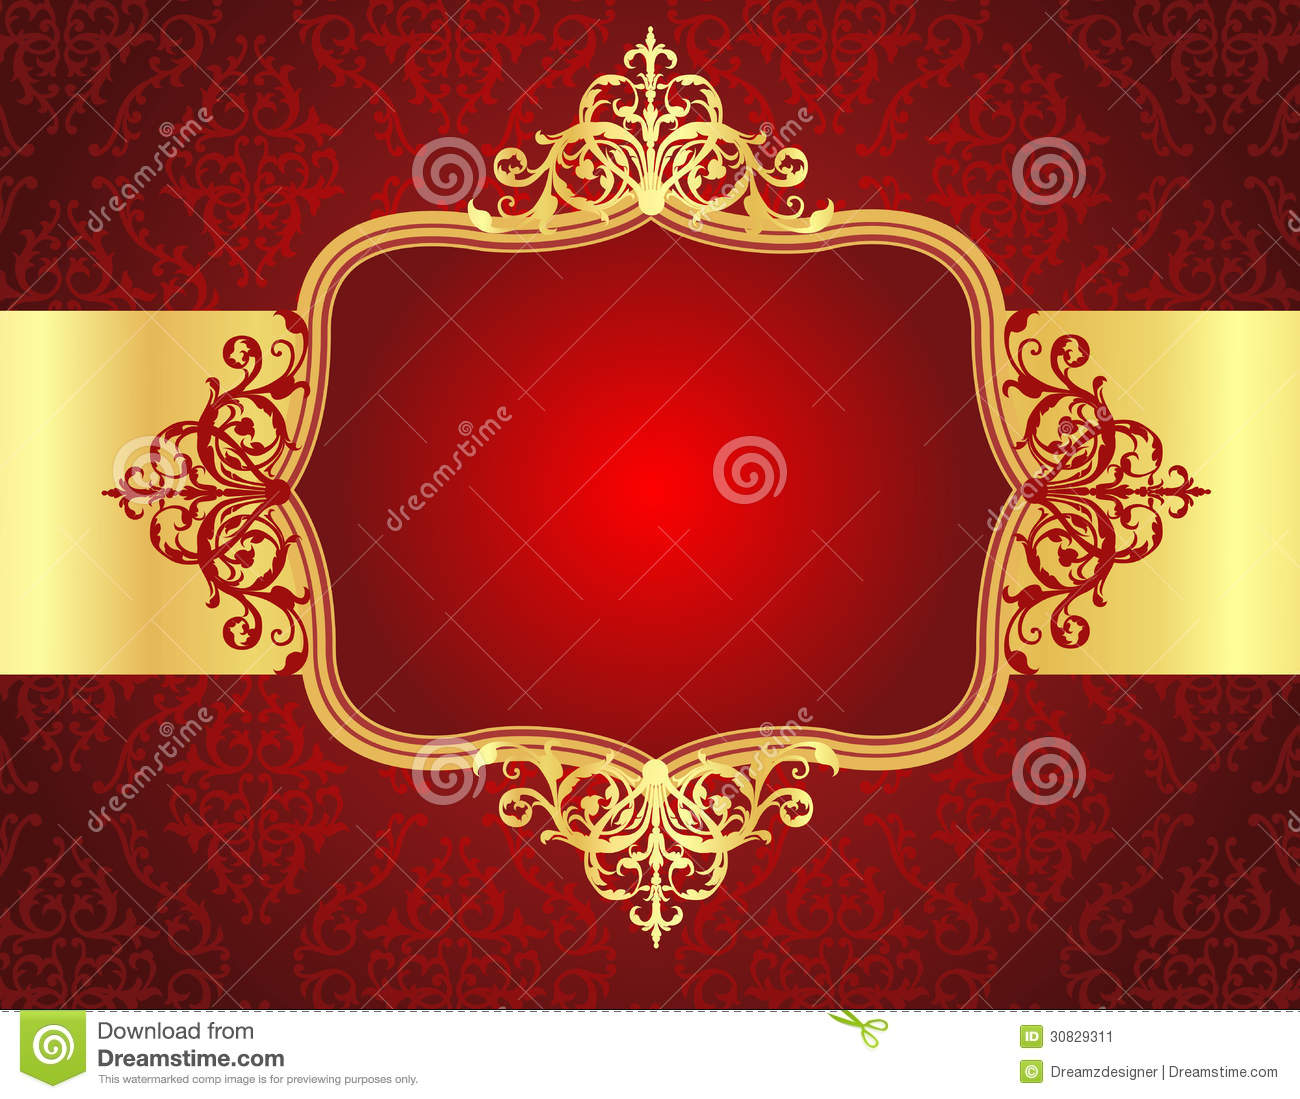 Wedding Invitation Background With Red Damask Patt Illustration ...